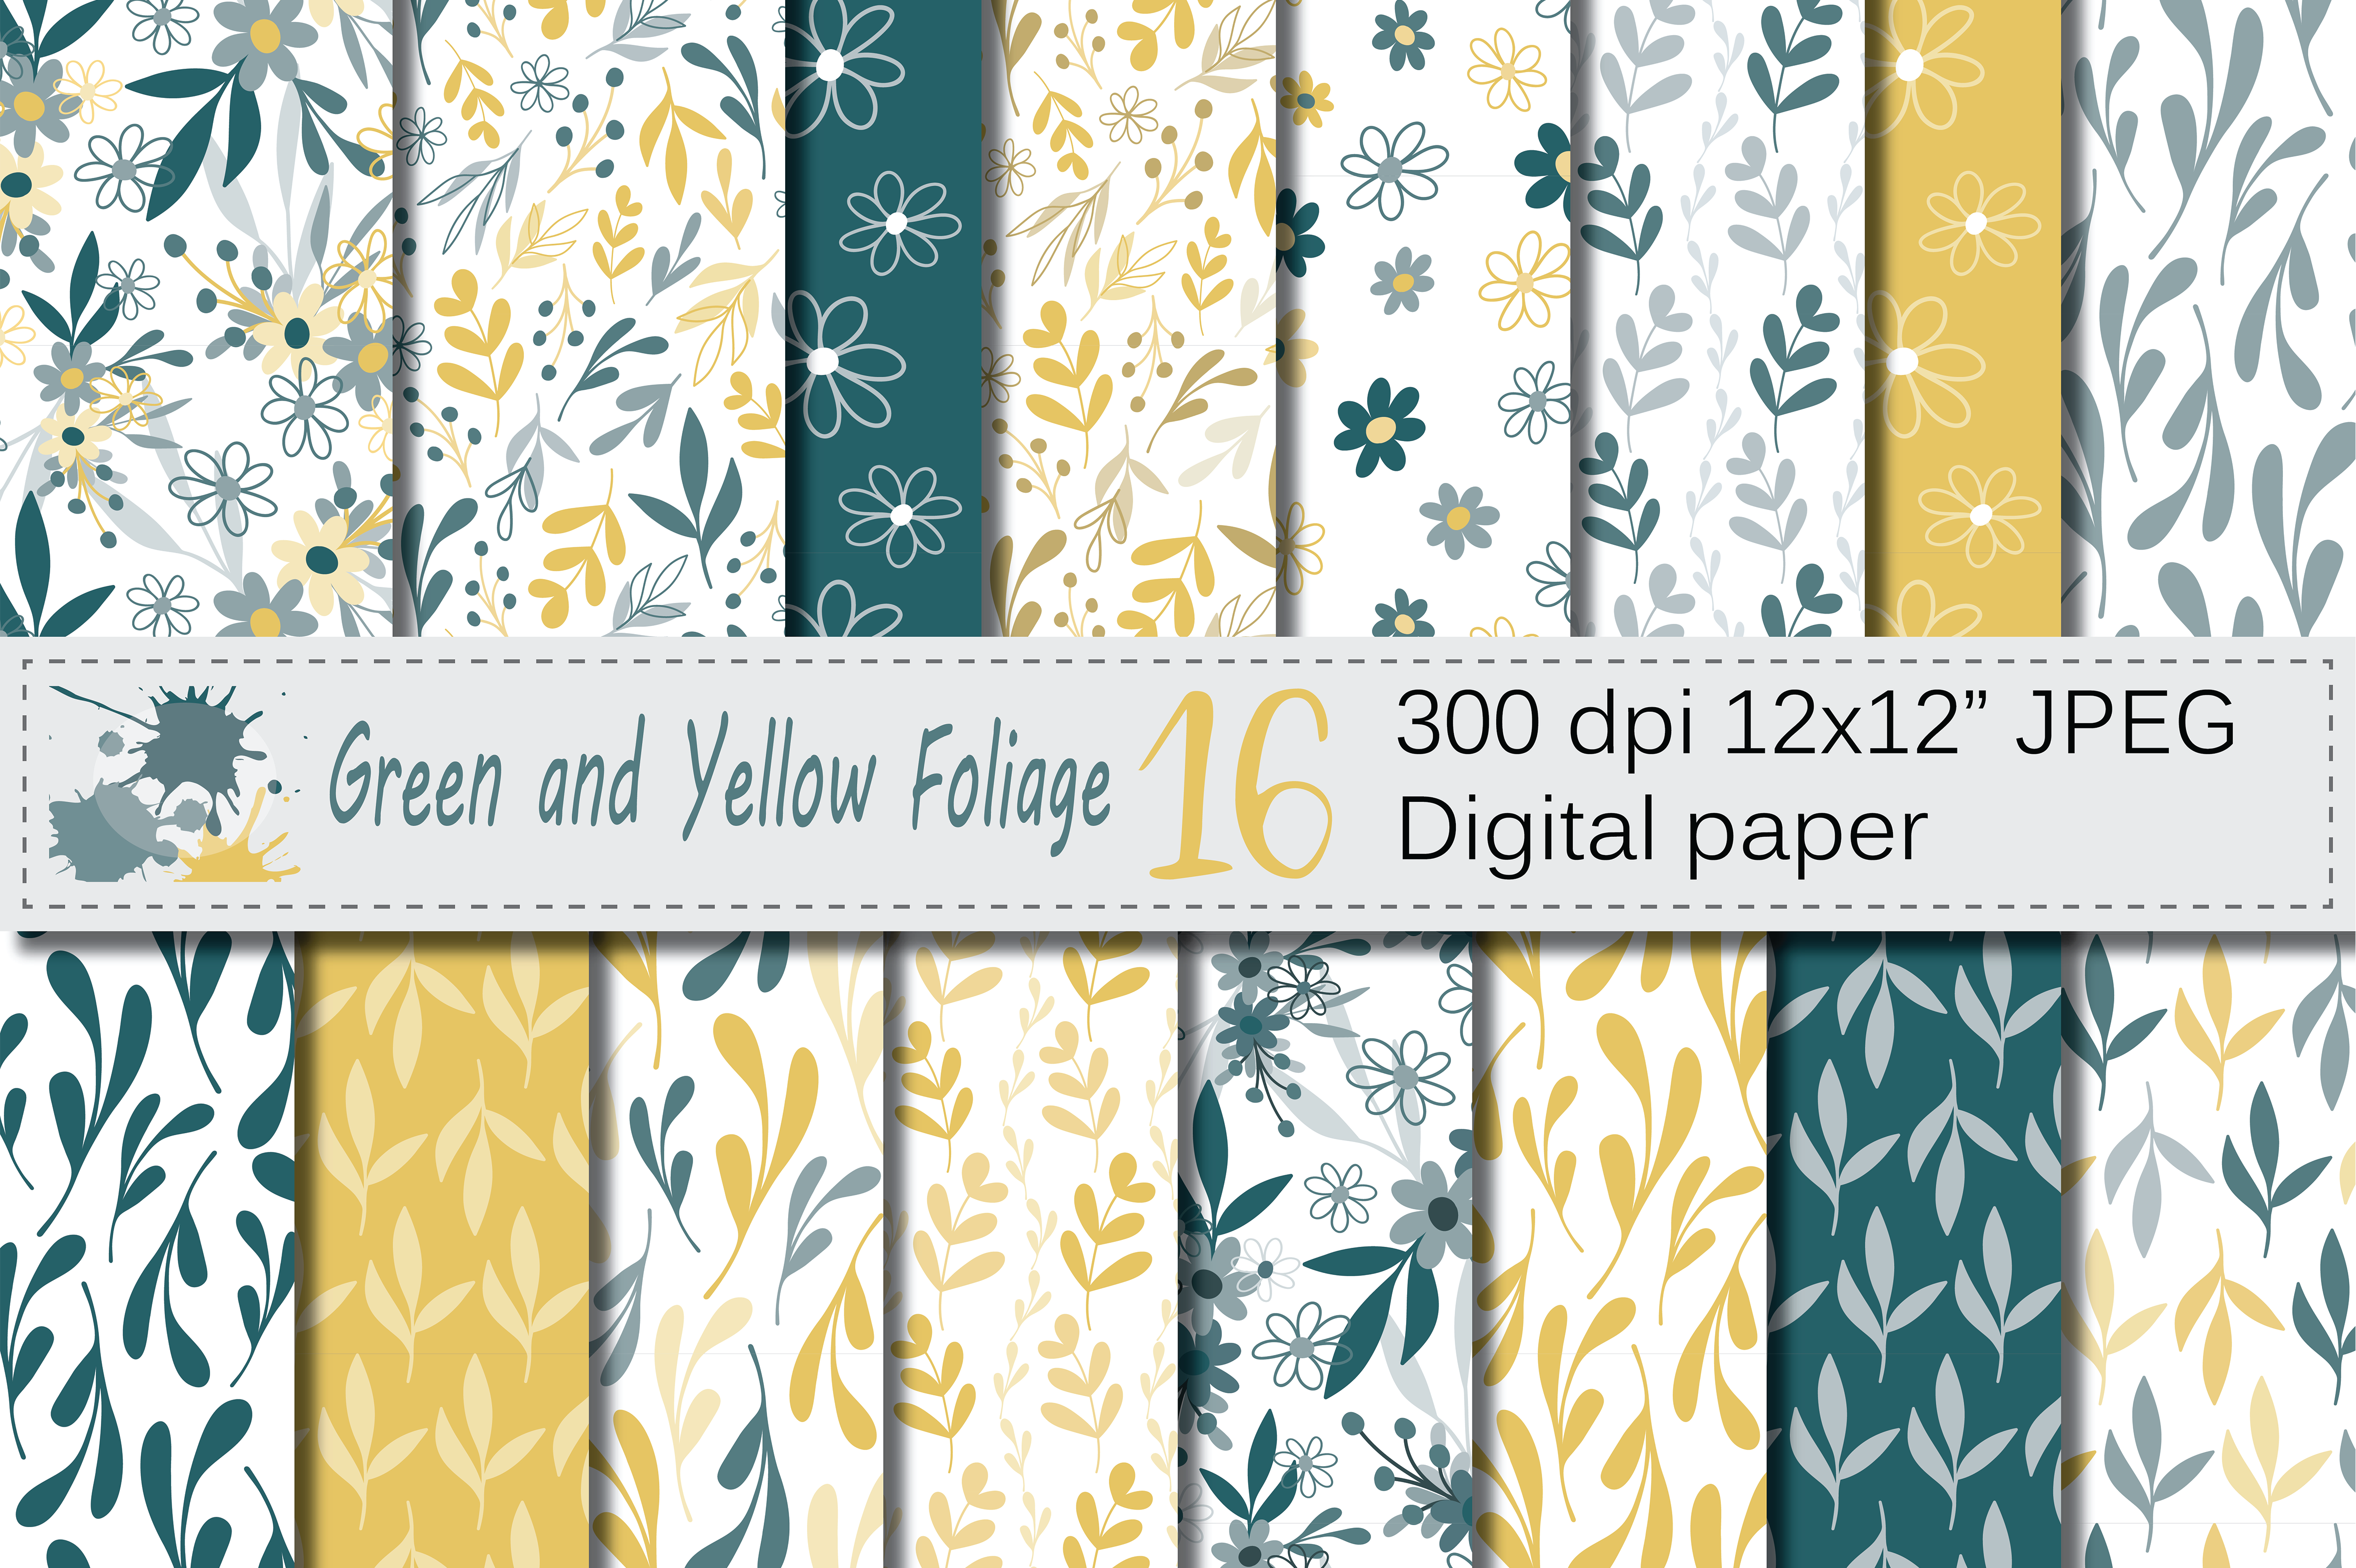 Seamless Green and Yellow Hand Drawn Flowers and Leaves Digital Paper / Foliage Seamless Pattern Graphic Patterns By VR Digital Design